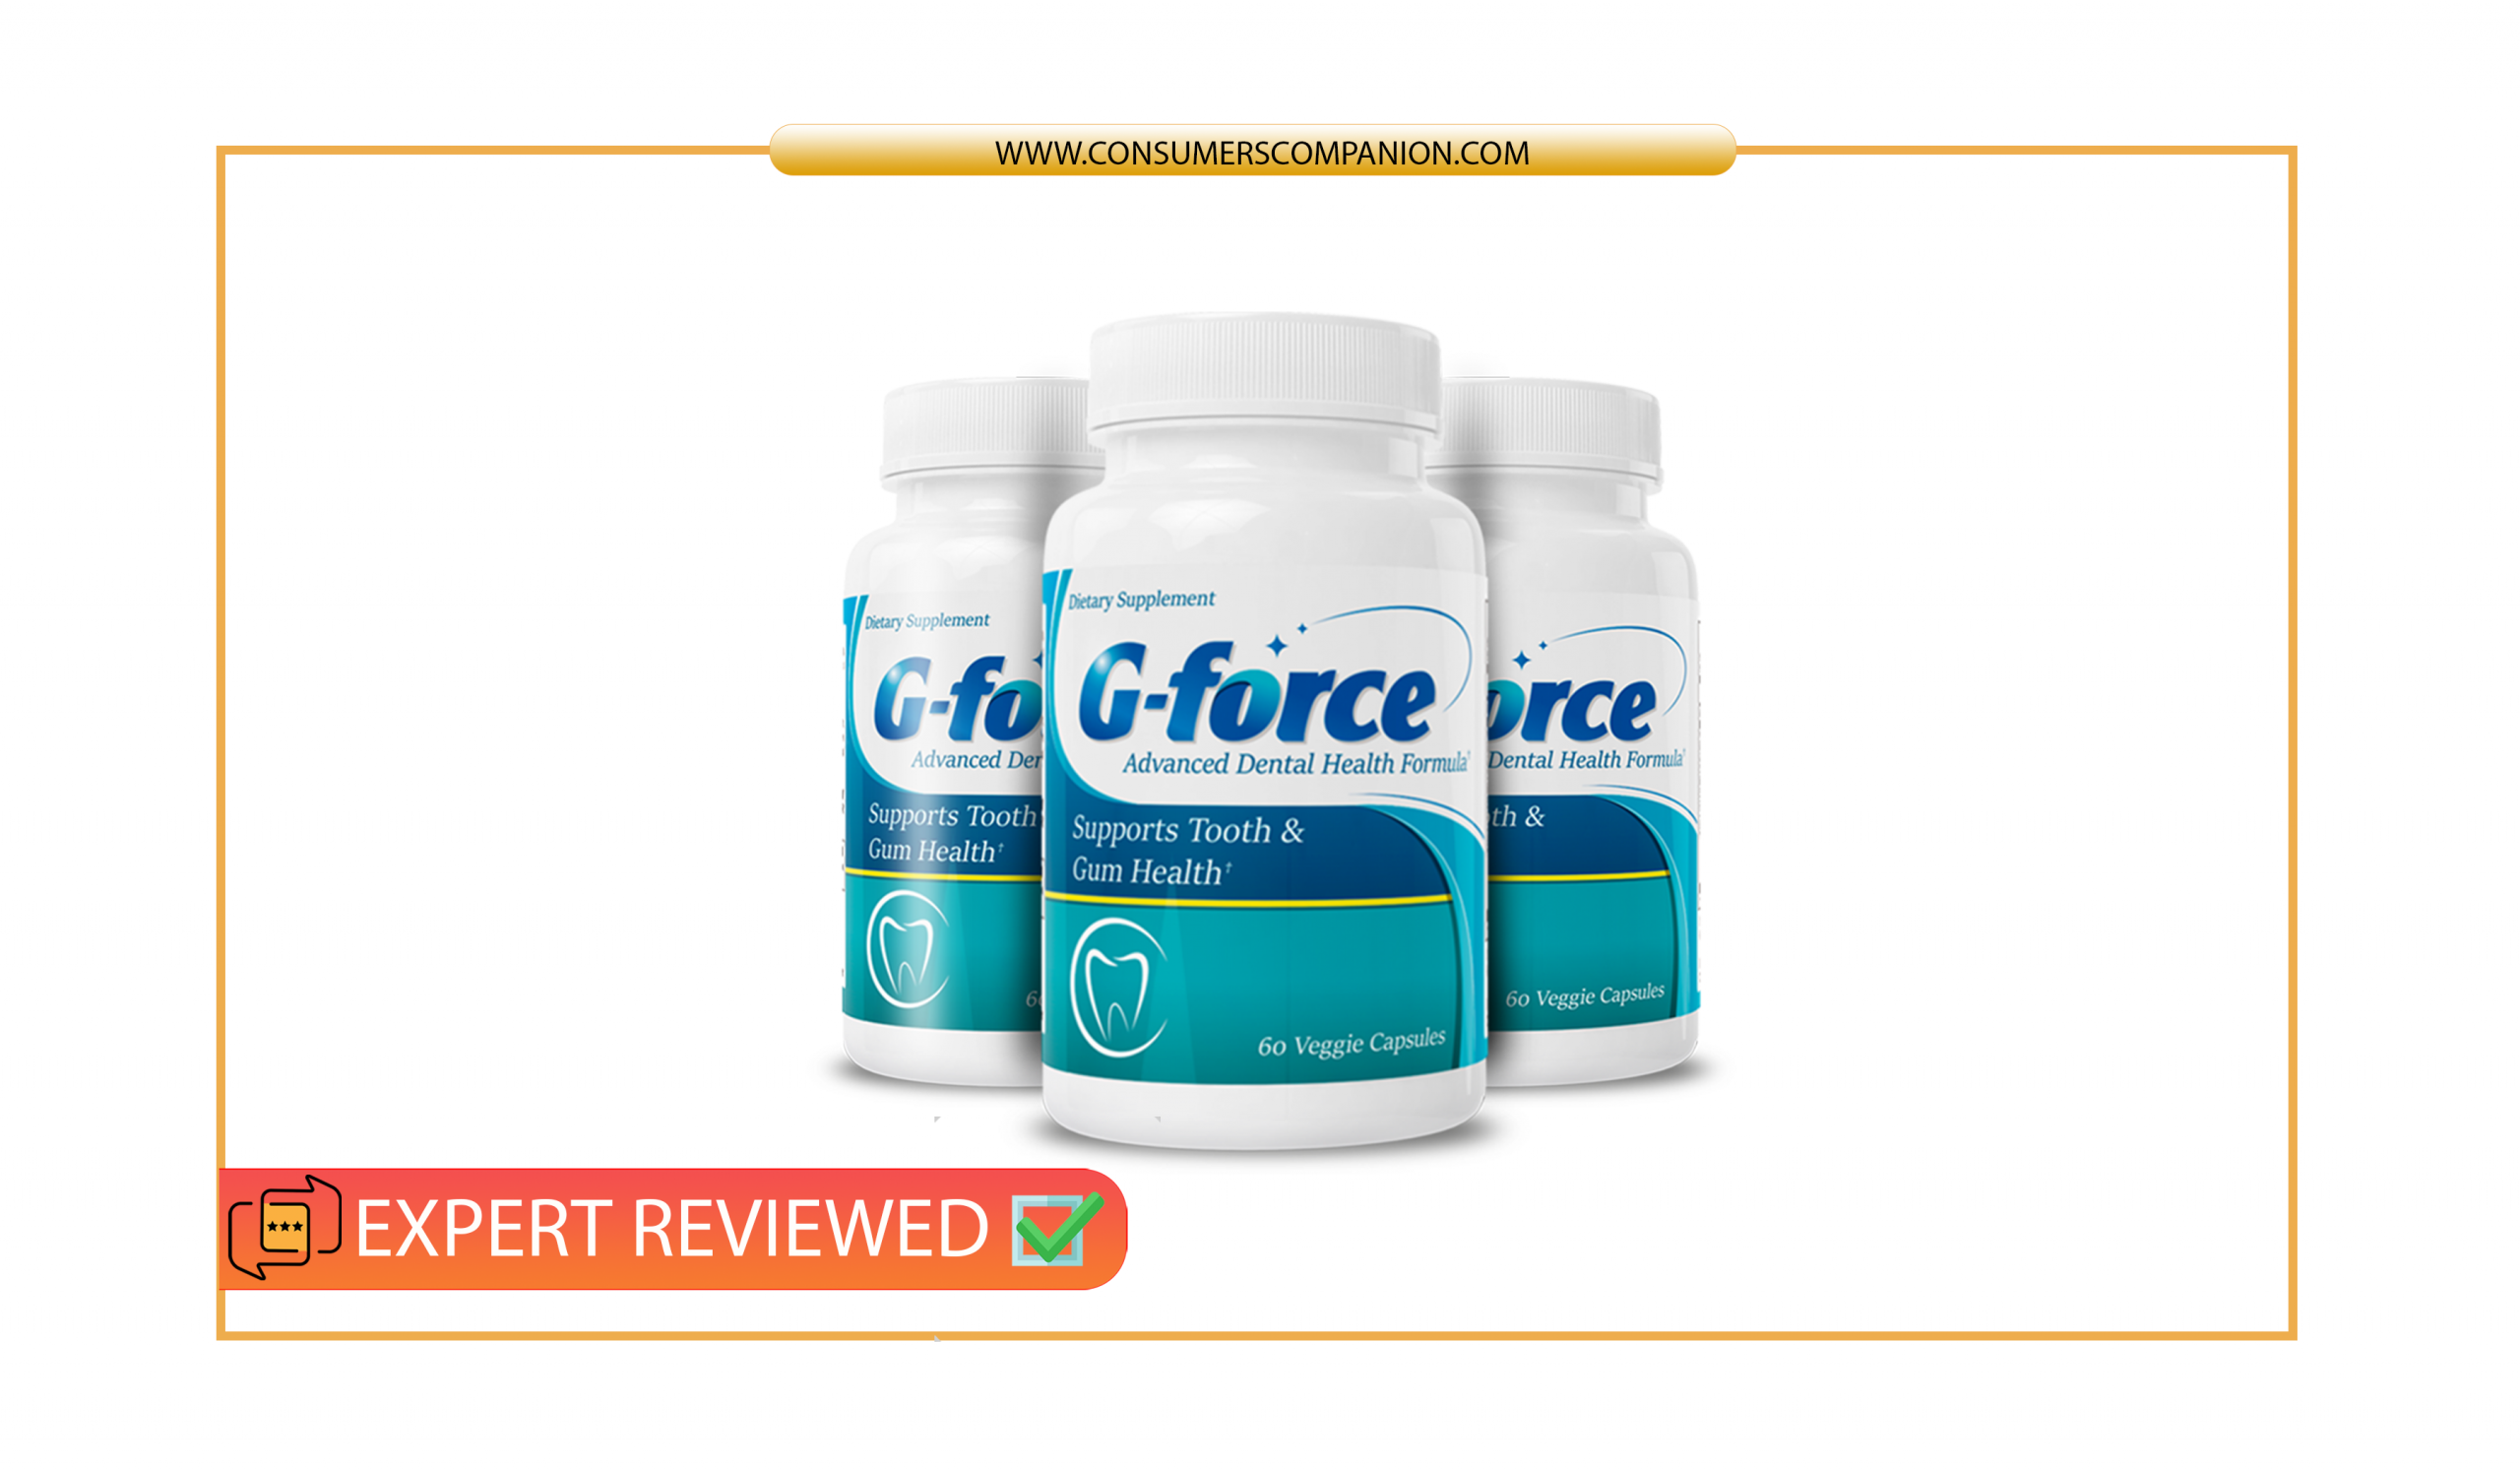 G-Force dental health supplement reviews